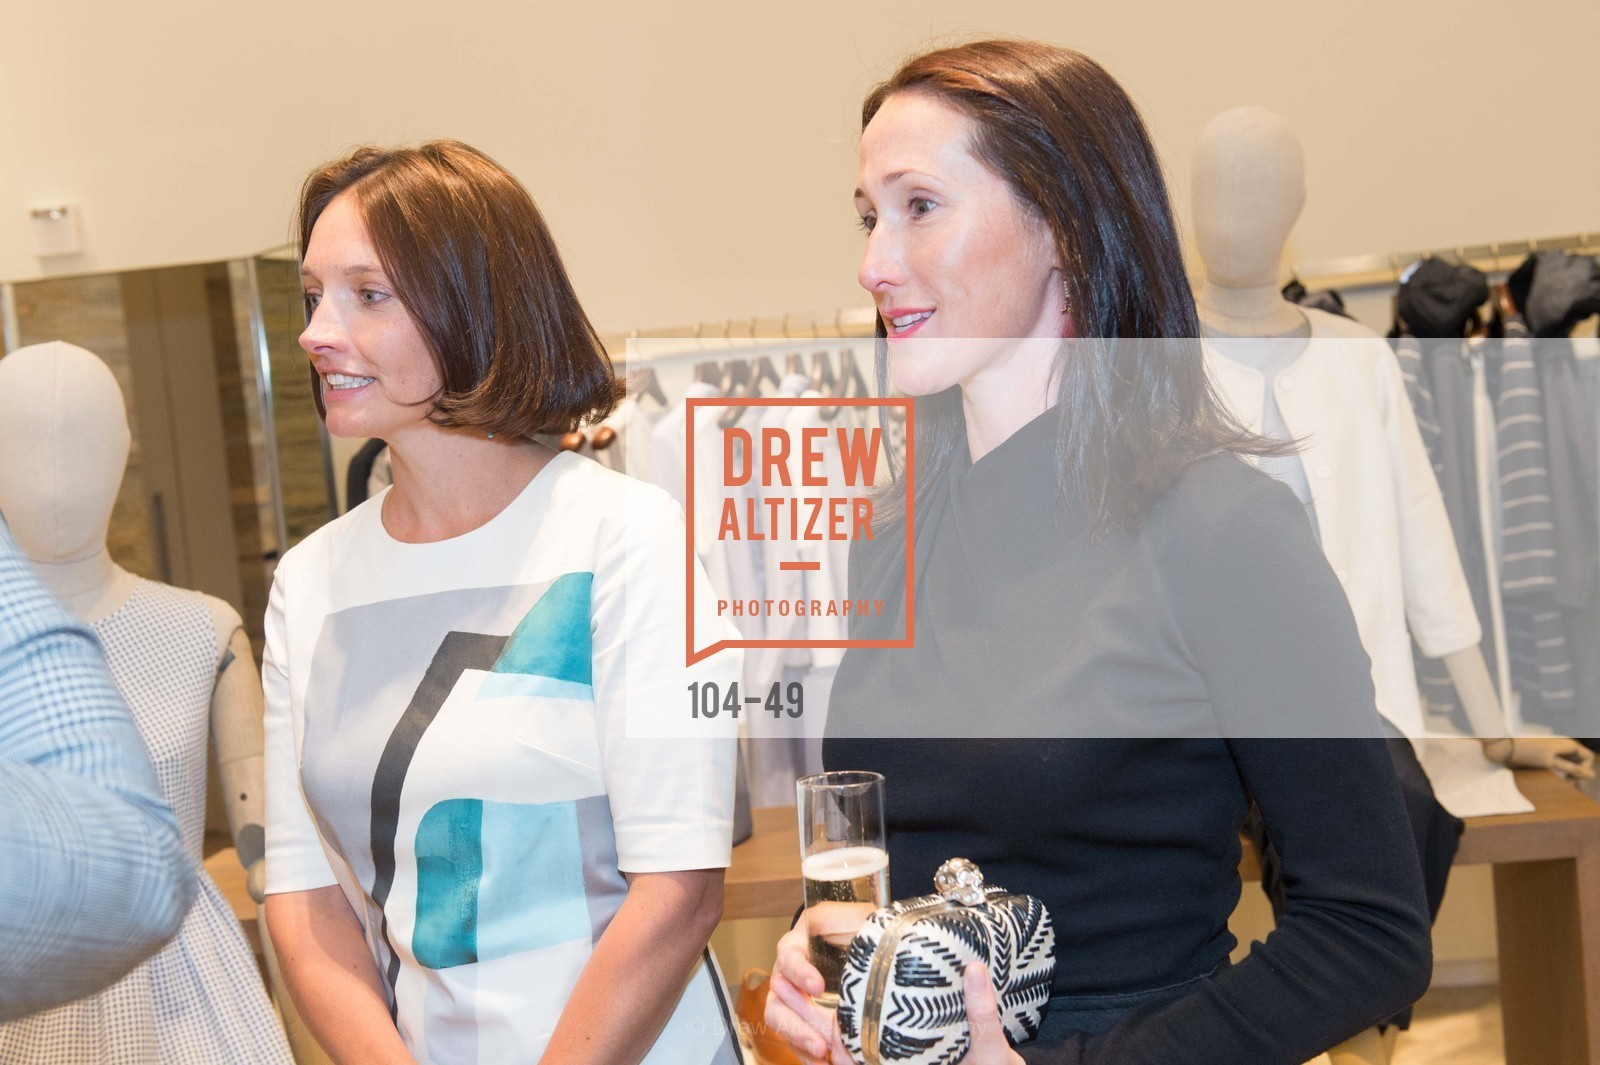 Betsy McDermott, Kathryn Freeman, Luncheon Hosted by Max Mara, Max Mara. 175 Post St, San Francisco, CA 94108, April 21st, 2015,Drew Altizer, Drew Altizer Photography, full-service agency, private events, San Francisco photographer, photographer california